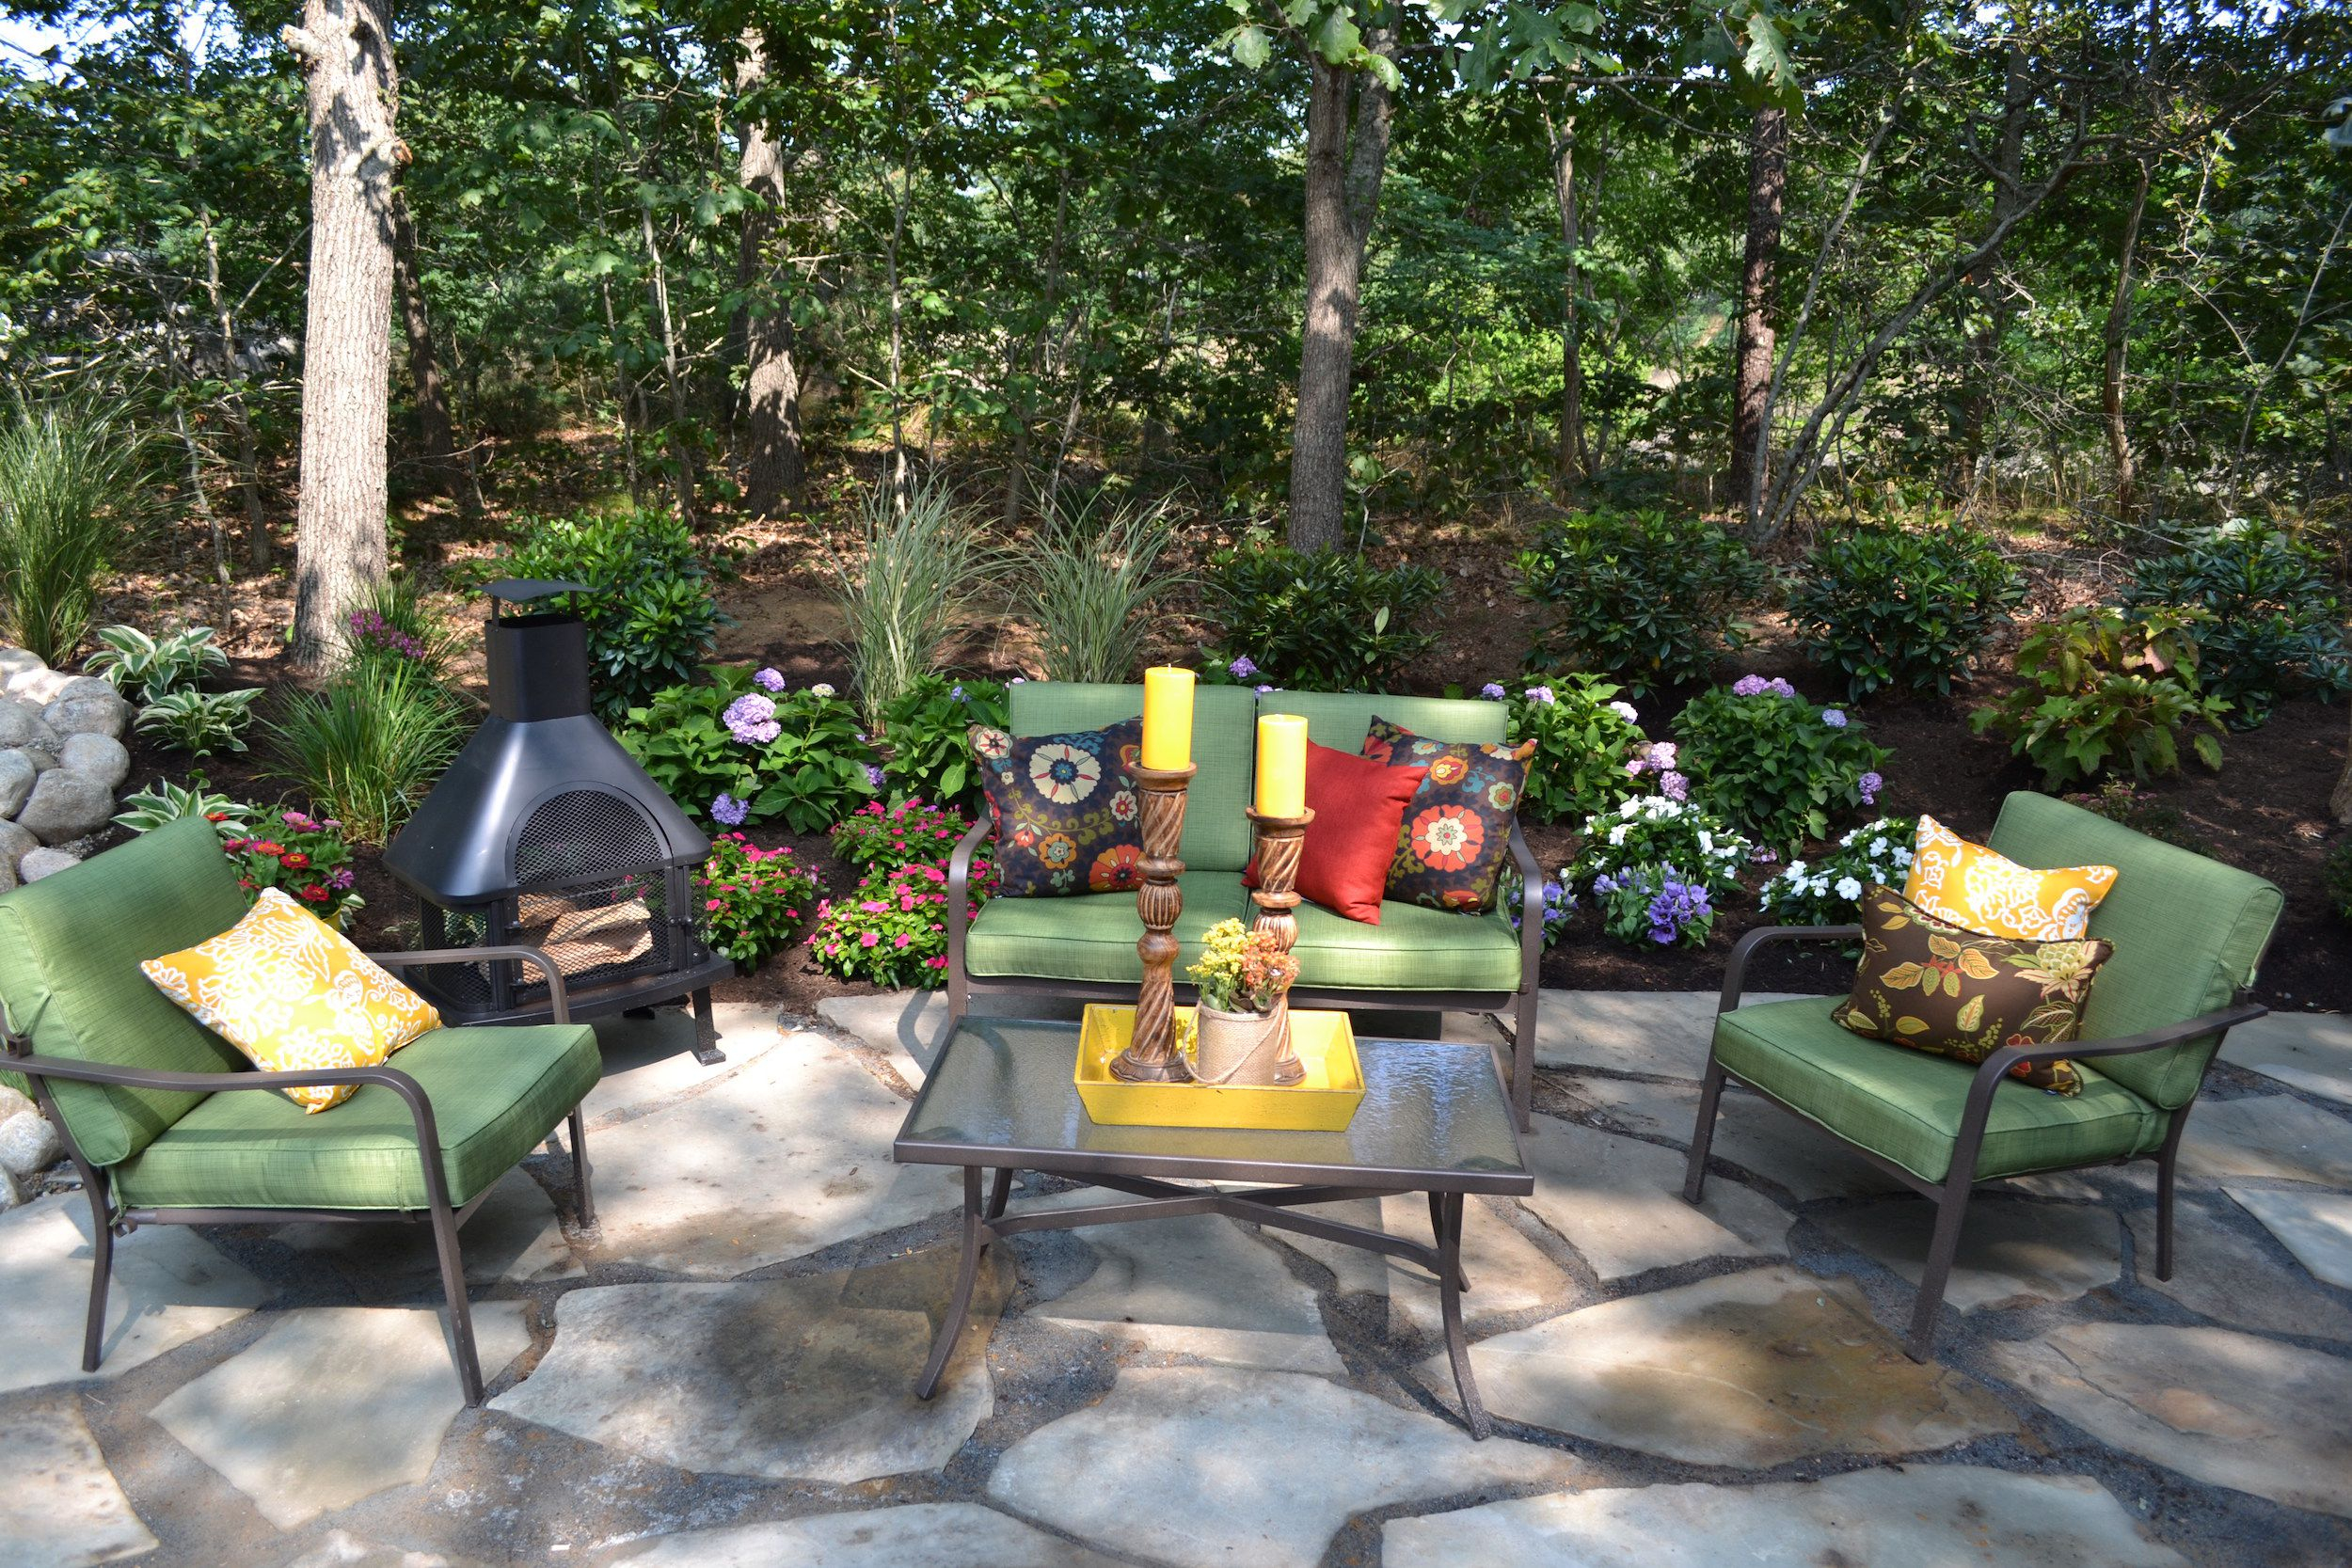 Easy Landscaping Ideas Low Maintenance Landscape Design Tips in Pictures Of Backyard Landscaping